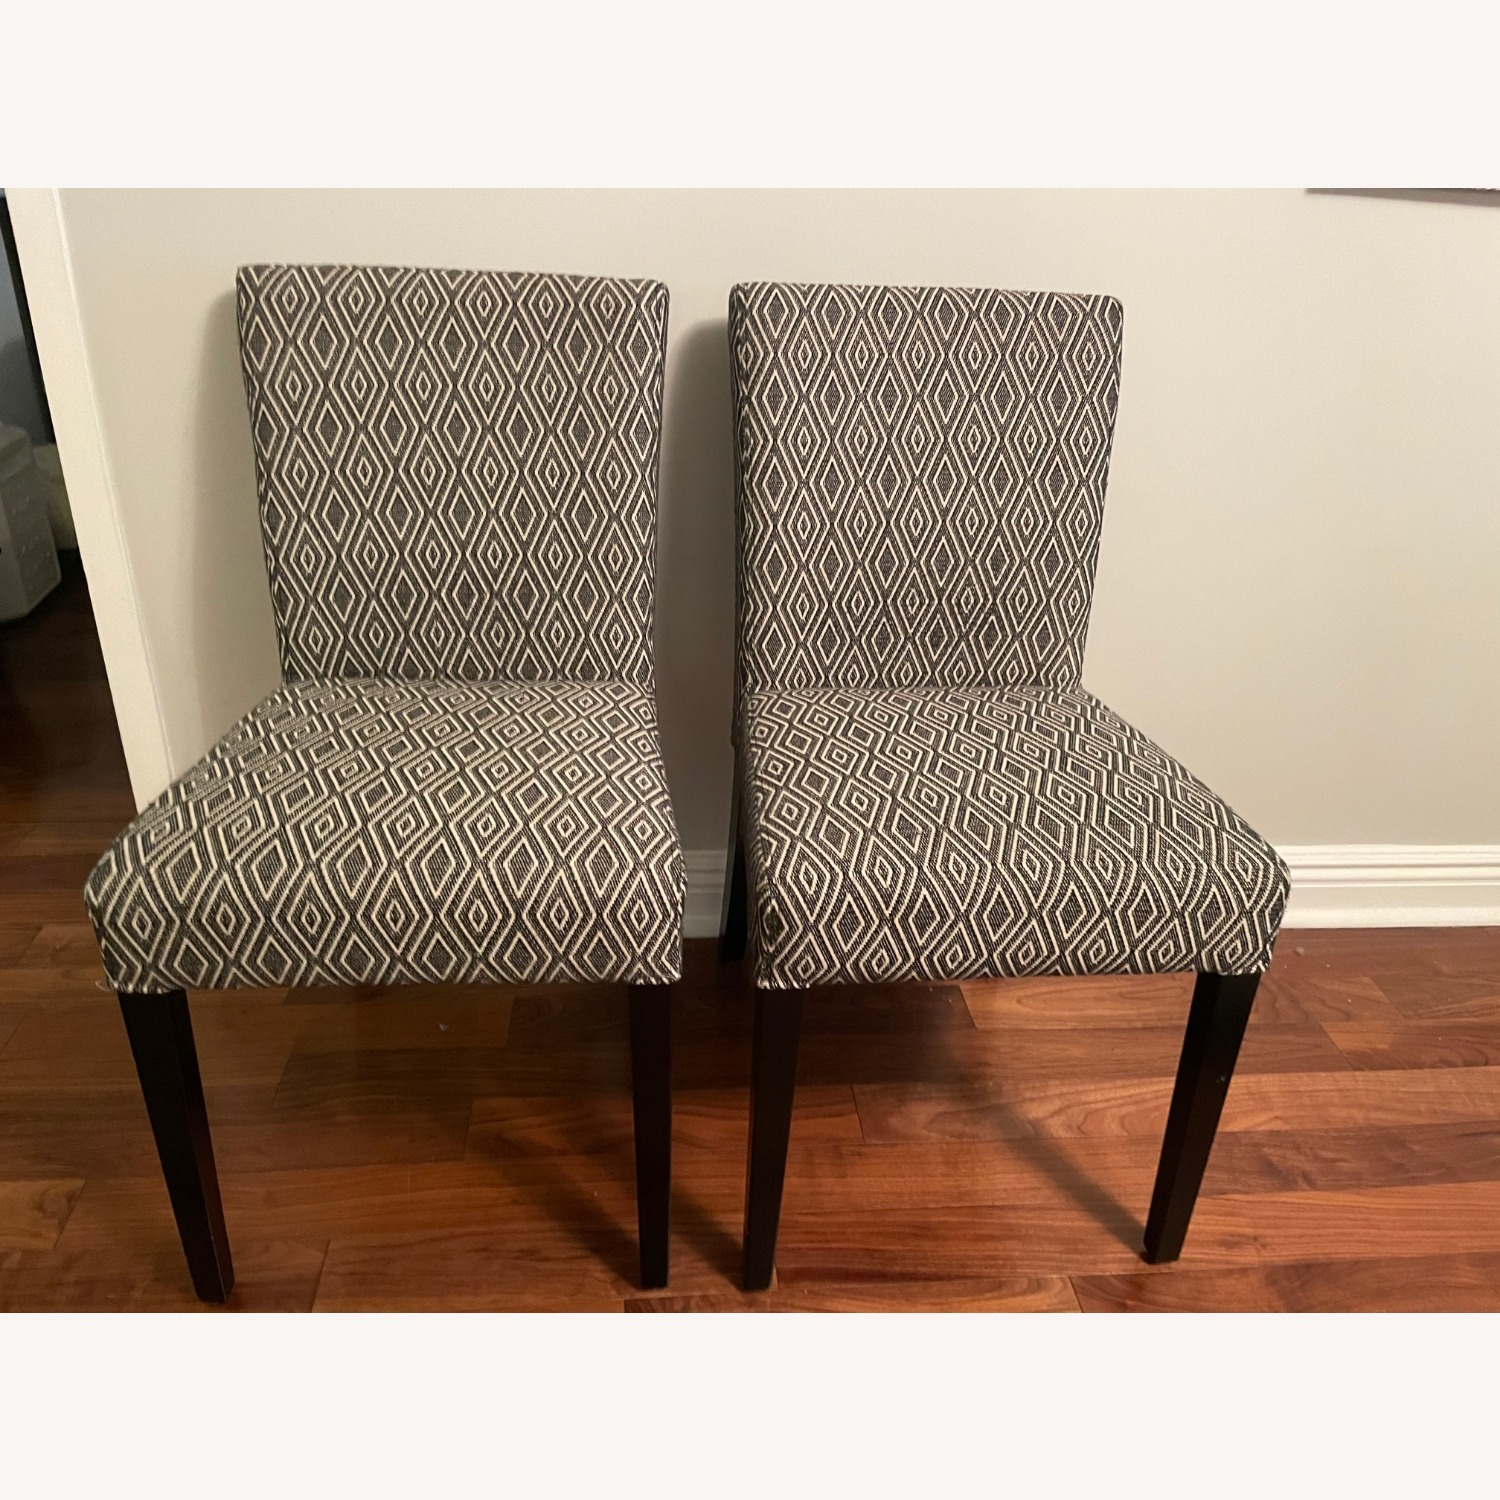 Crate & Barrel Upholstered Dining Chair Set - image-1